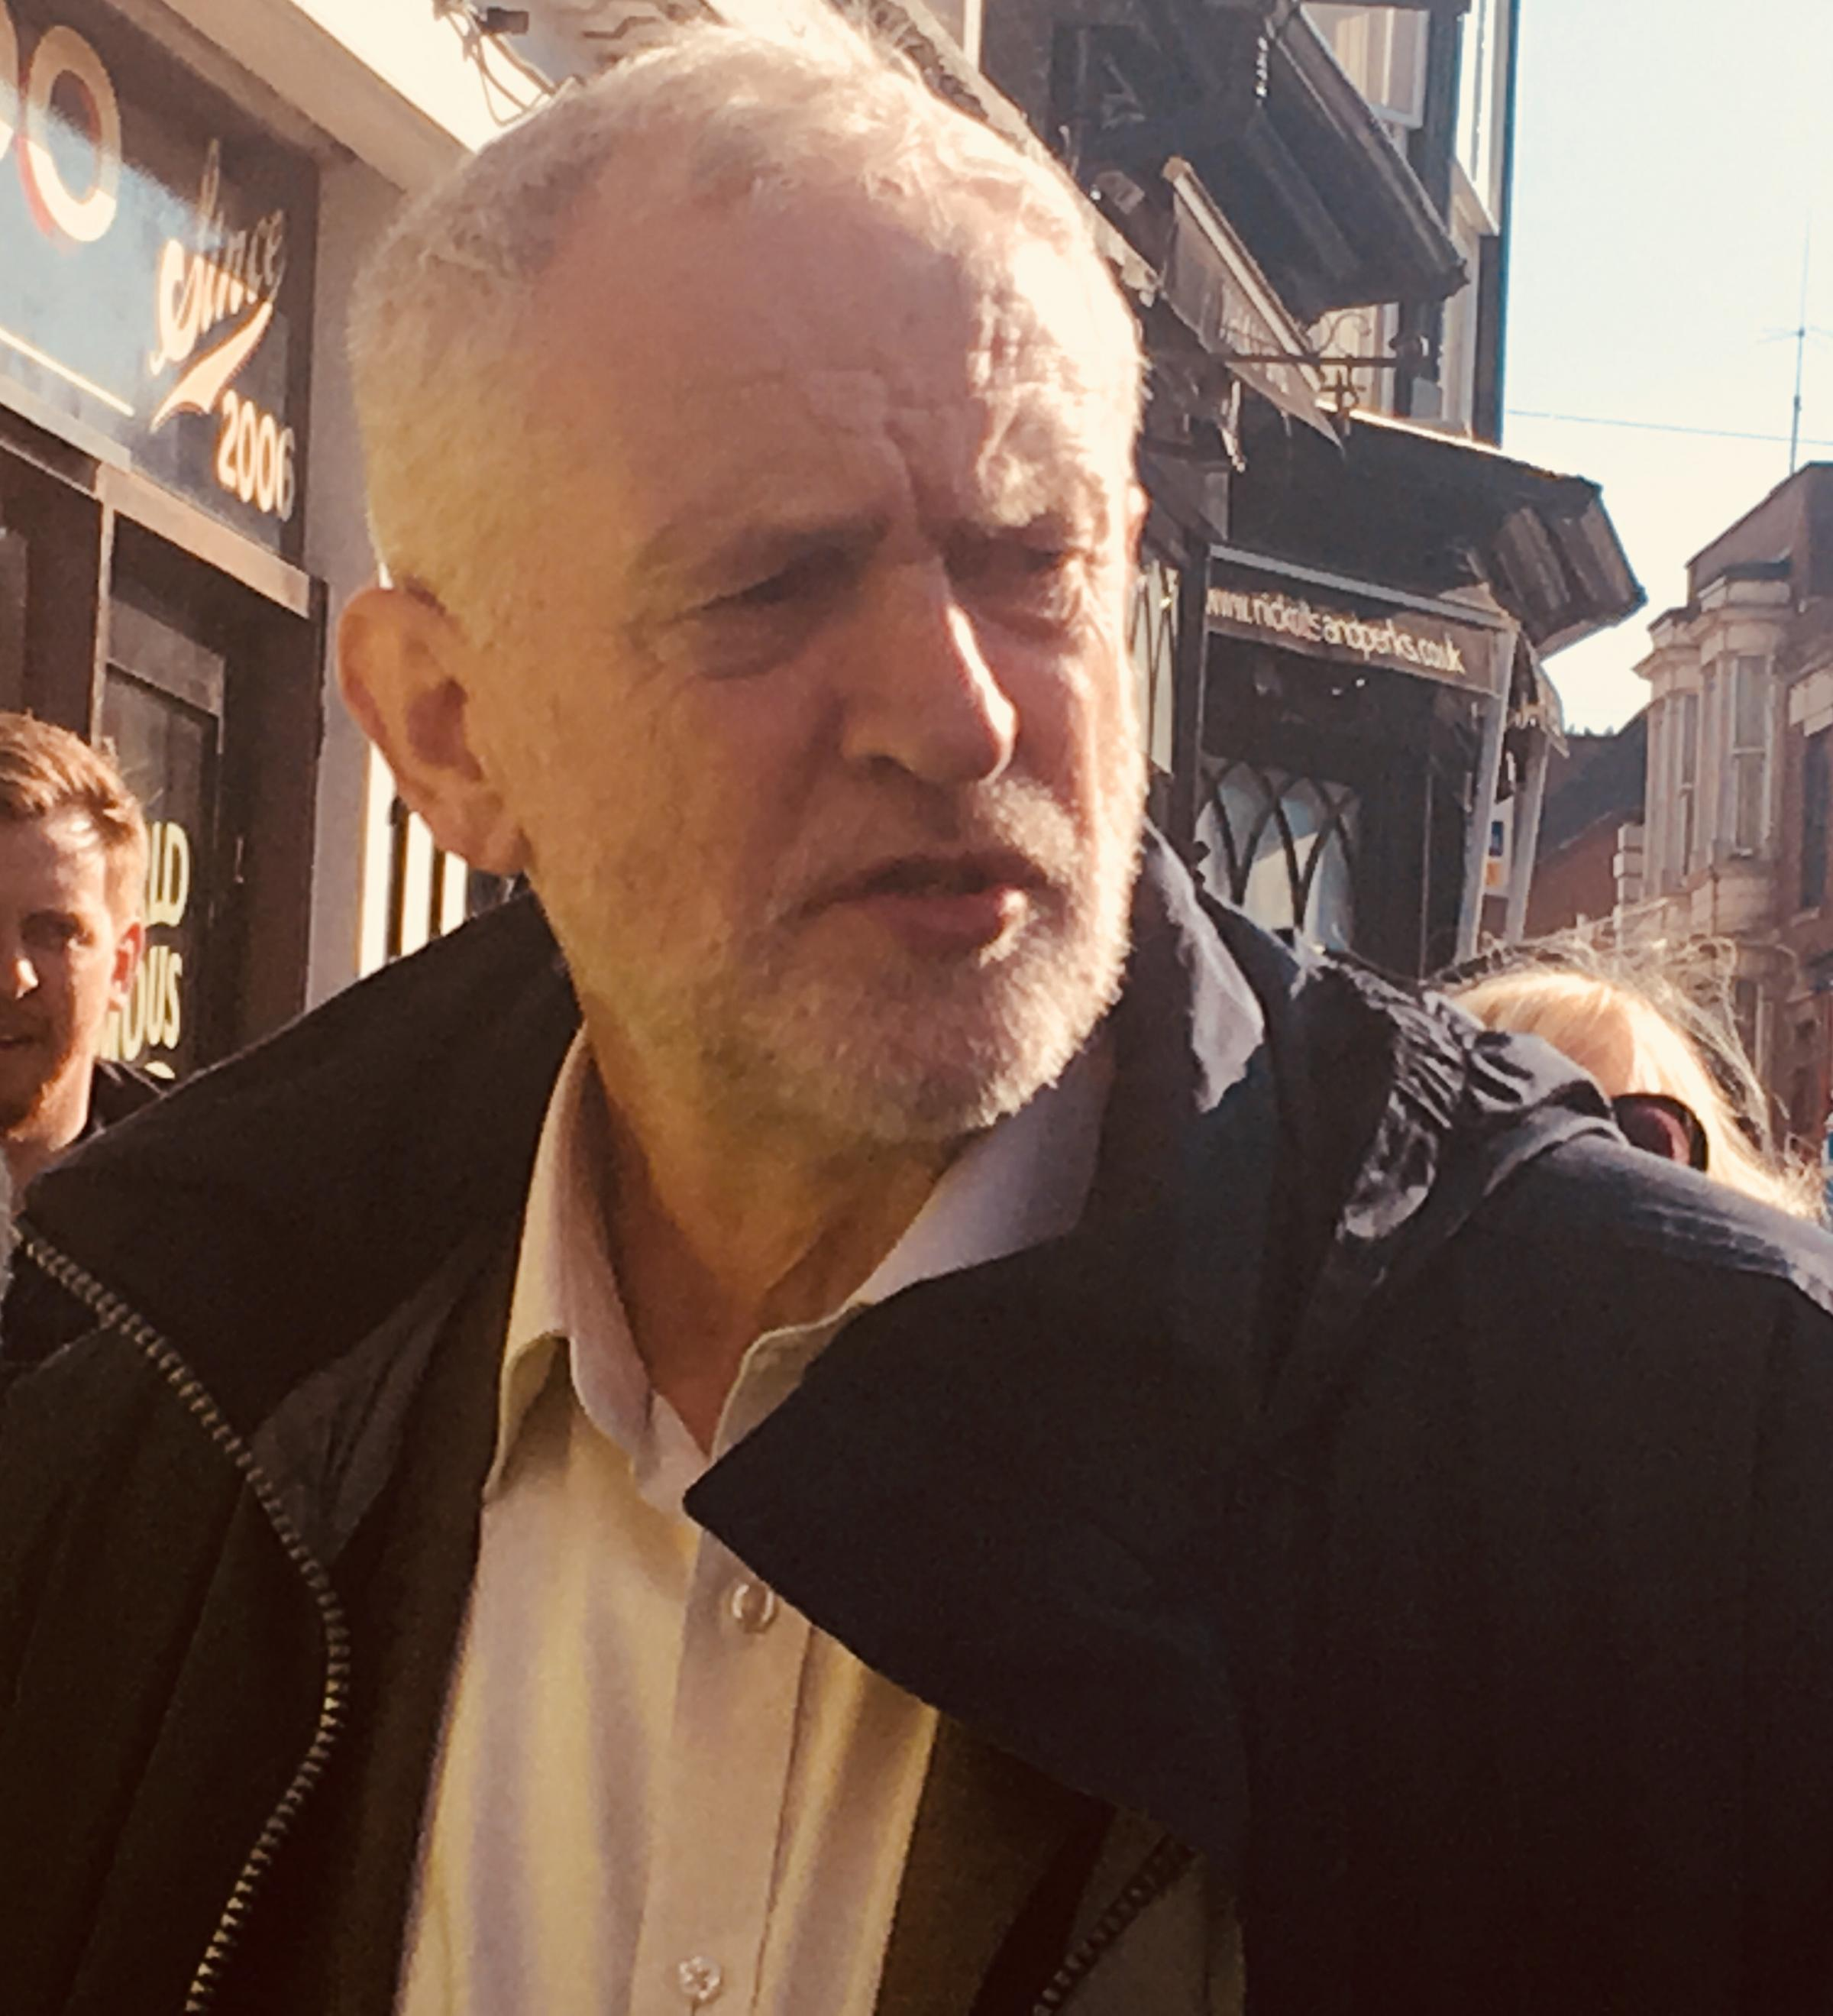 Labour puts pressure on UK PM with customs union shift